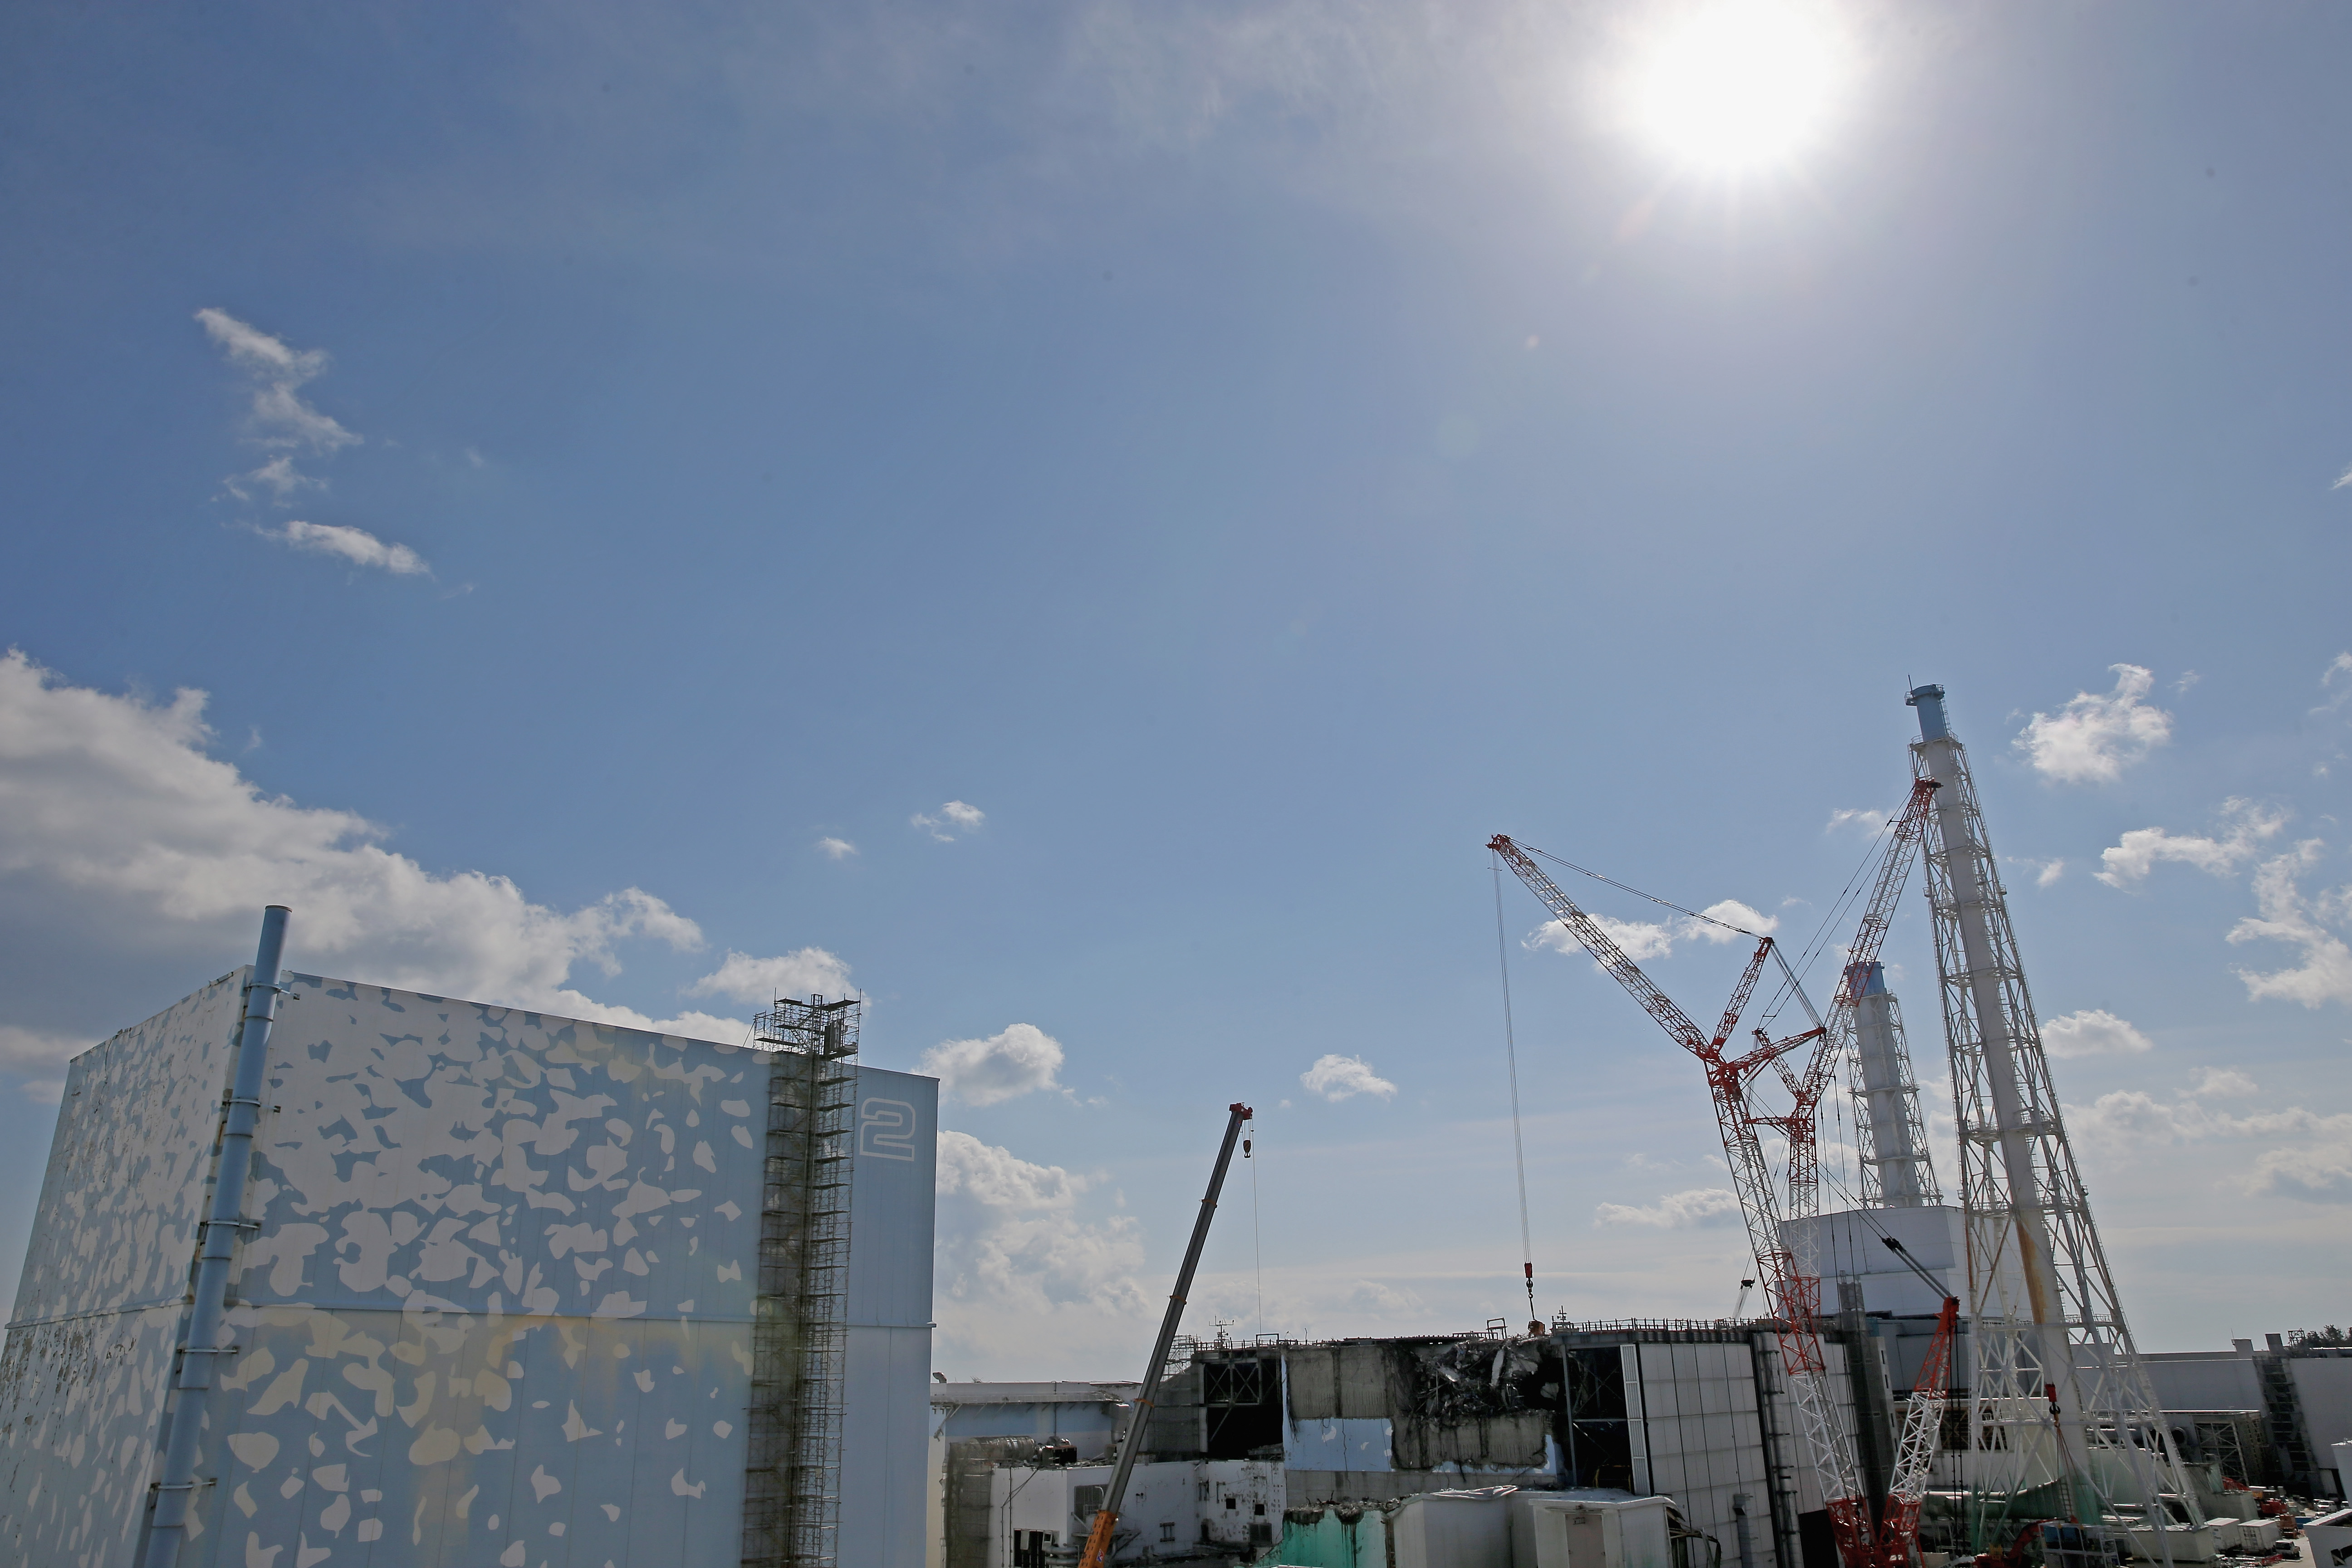 Fukushima reinvents itself with a $2.7 billion bet on renewables